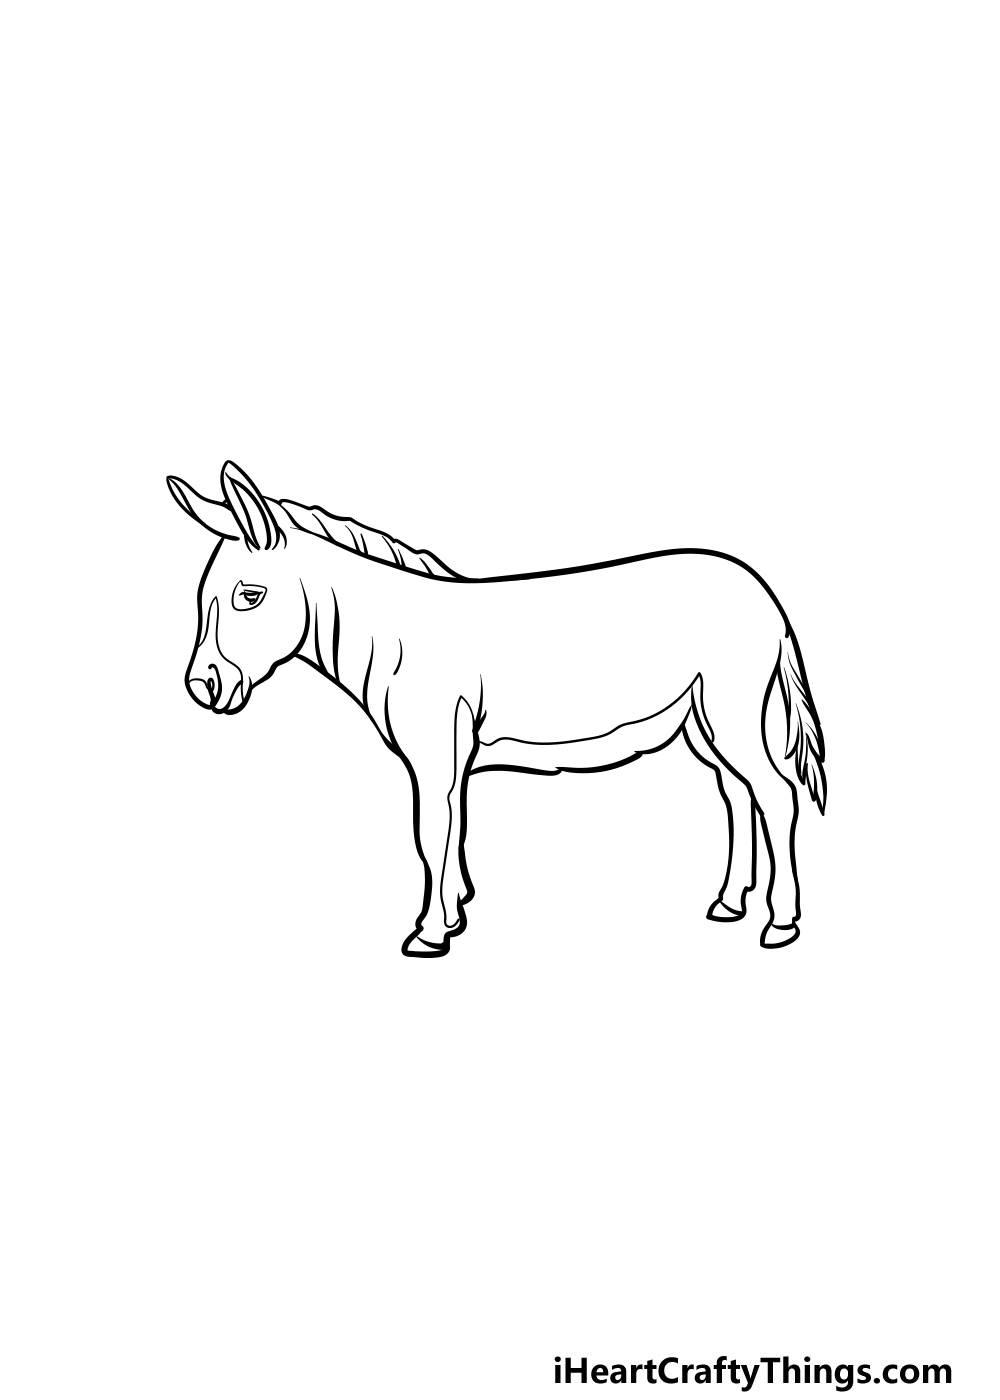 drawing a donkey step 5